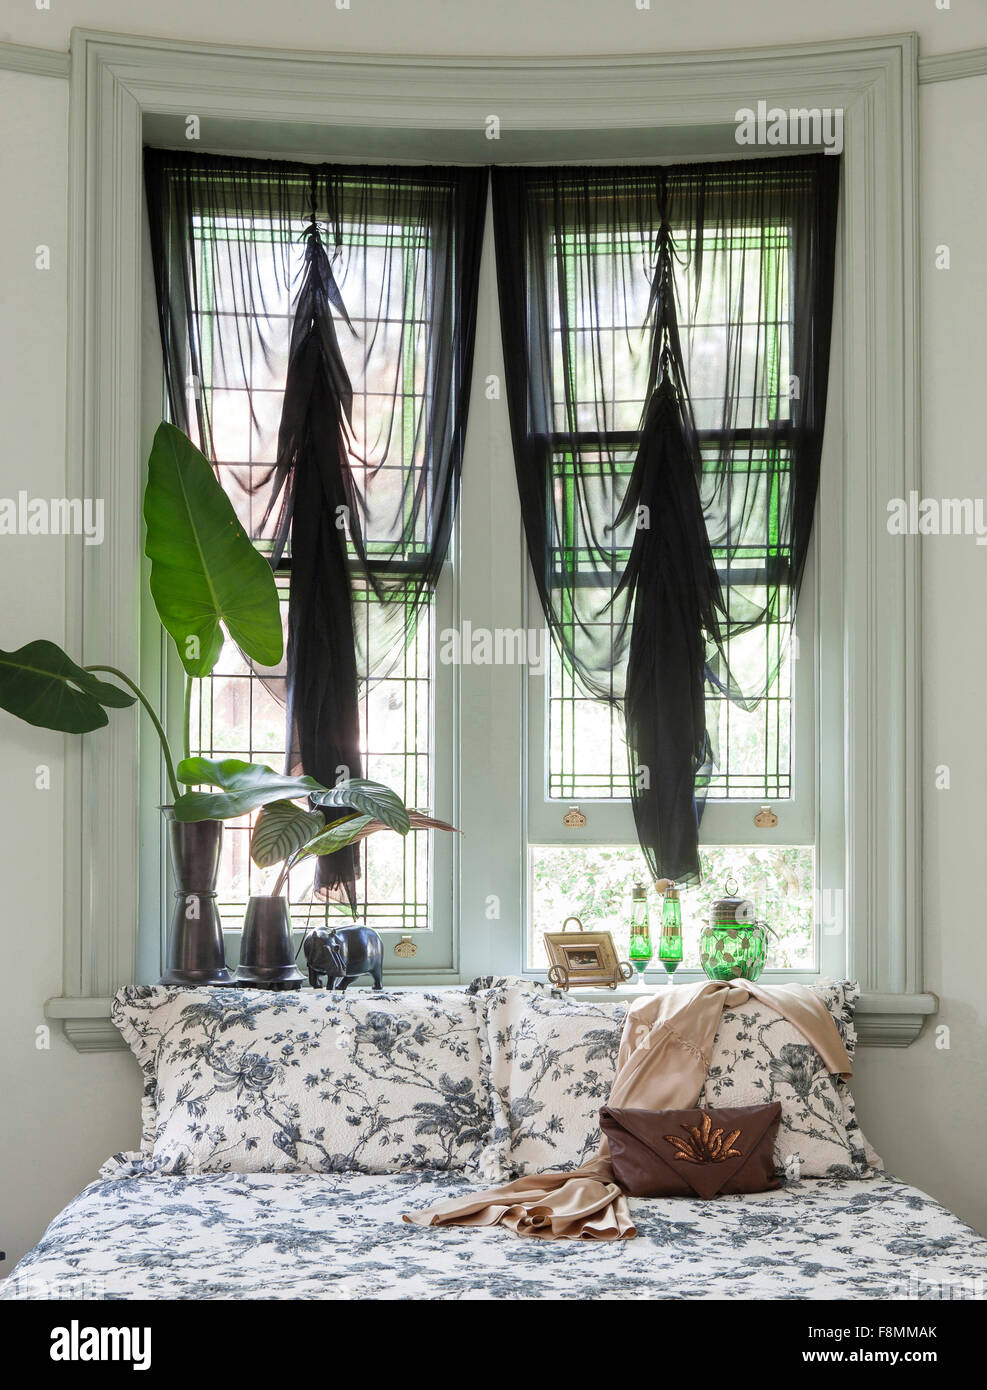 The Home Of Designer Erica Pols A Bedroom Windows Drapped With Stock Photo Alamy